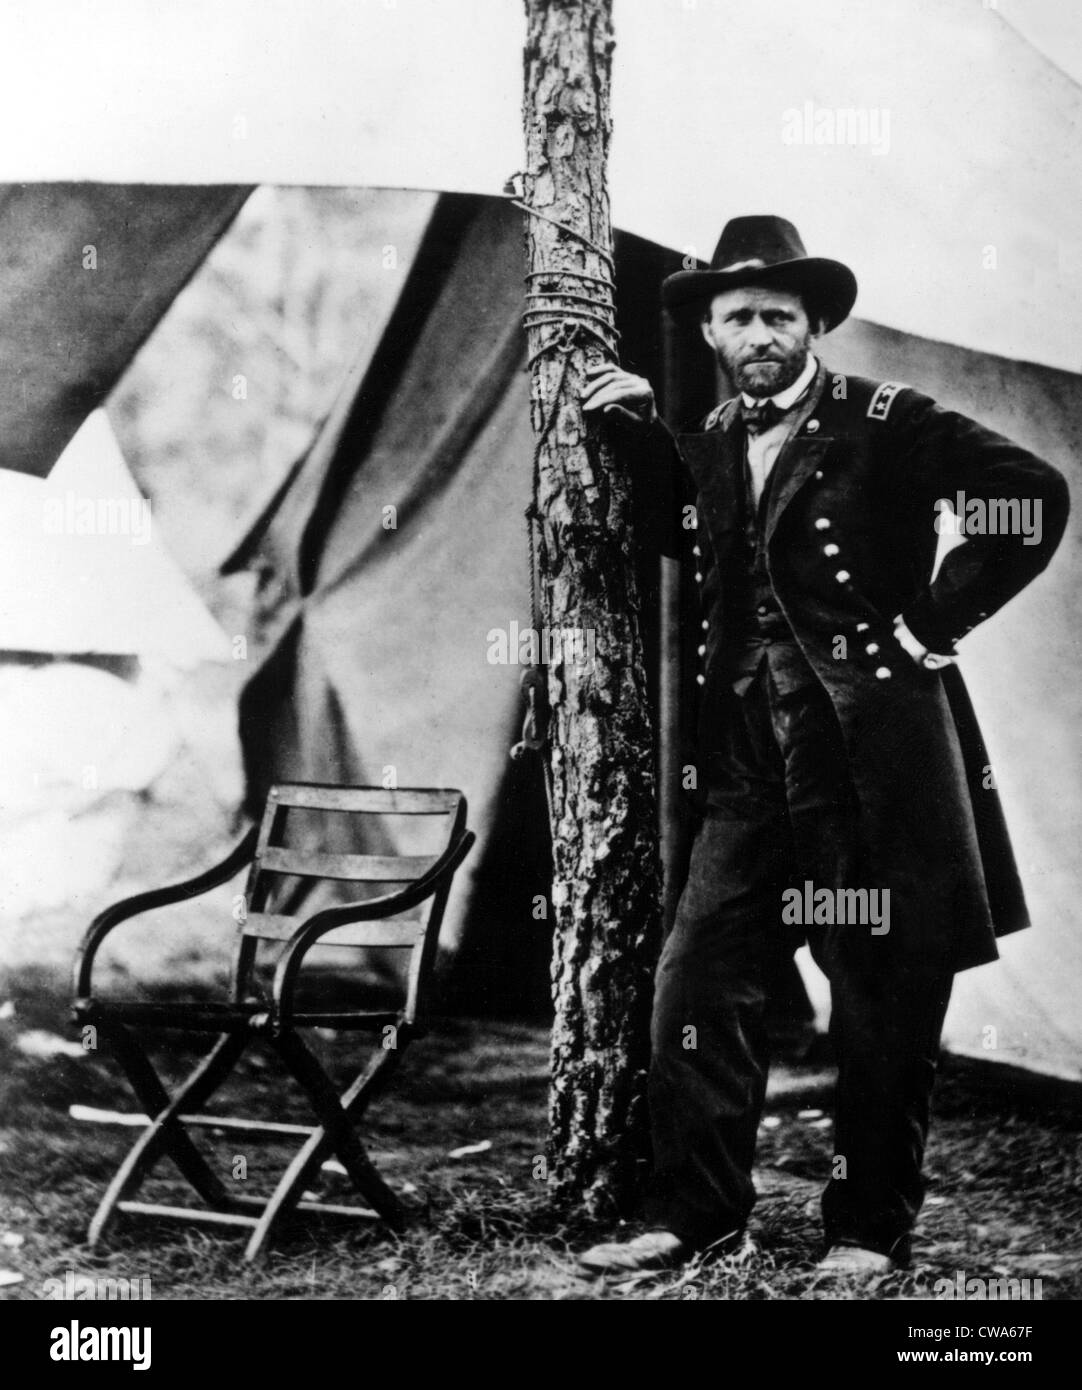 CIVIL WAR--Ulysses S. Grant. Courtesy: CSU Archives / Everett Collection - Stock Image